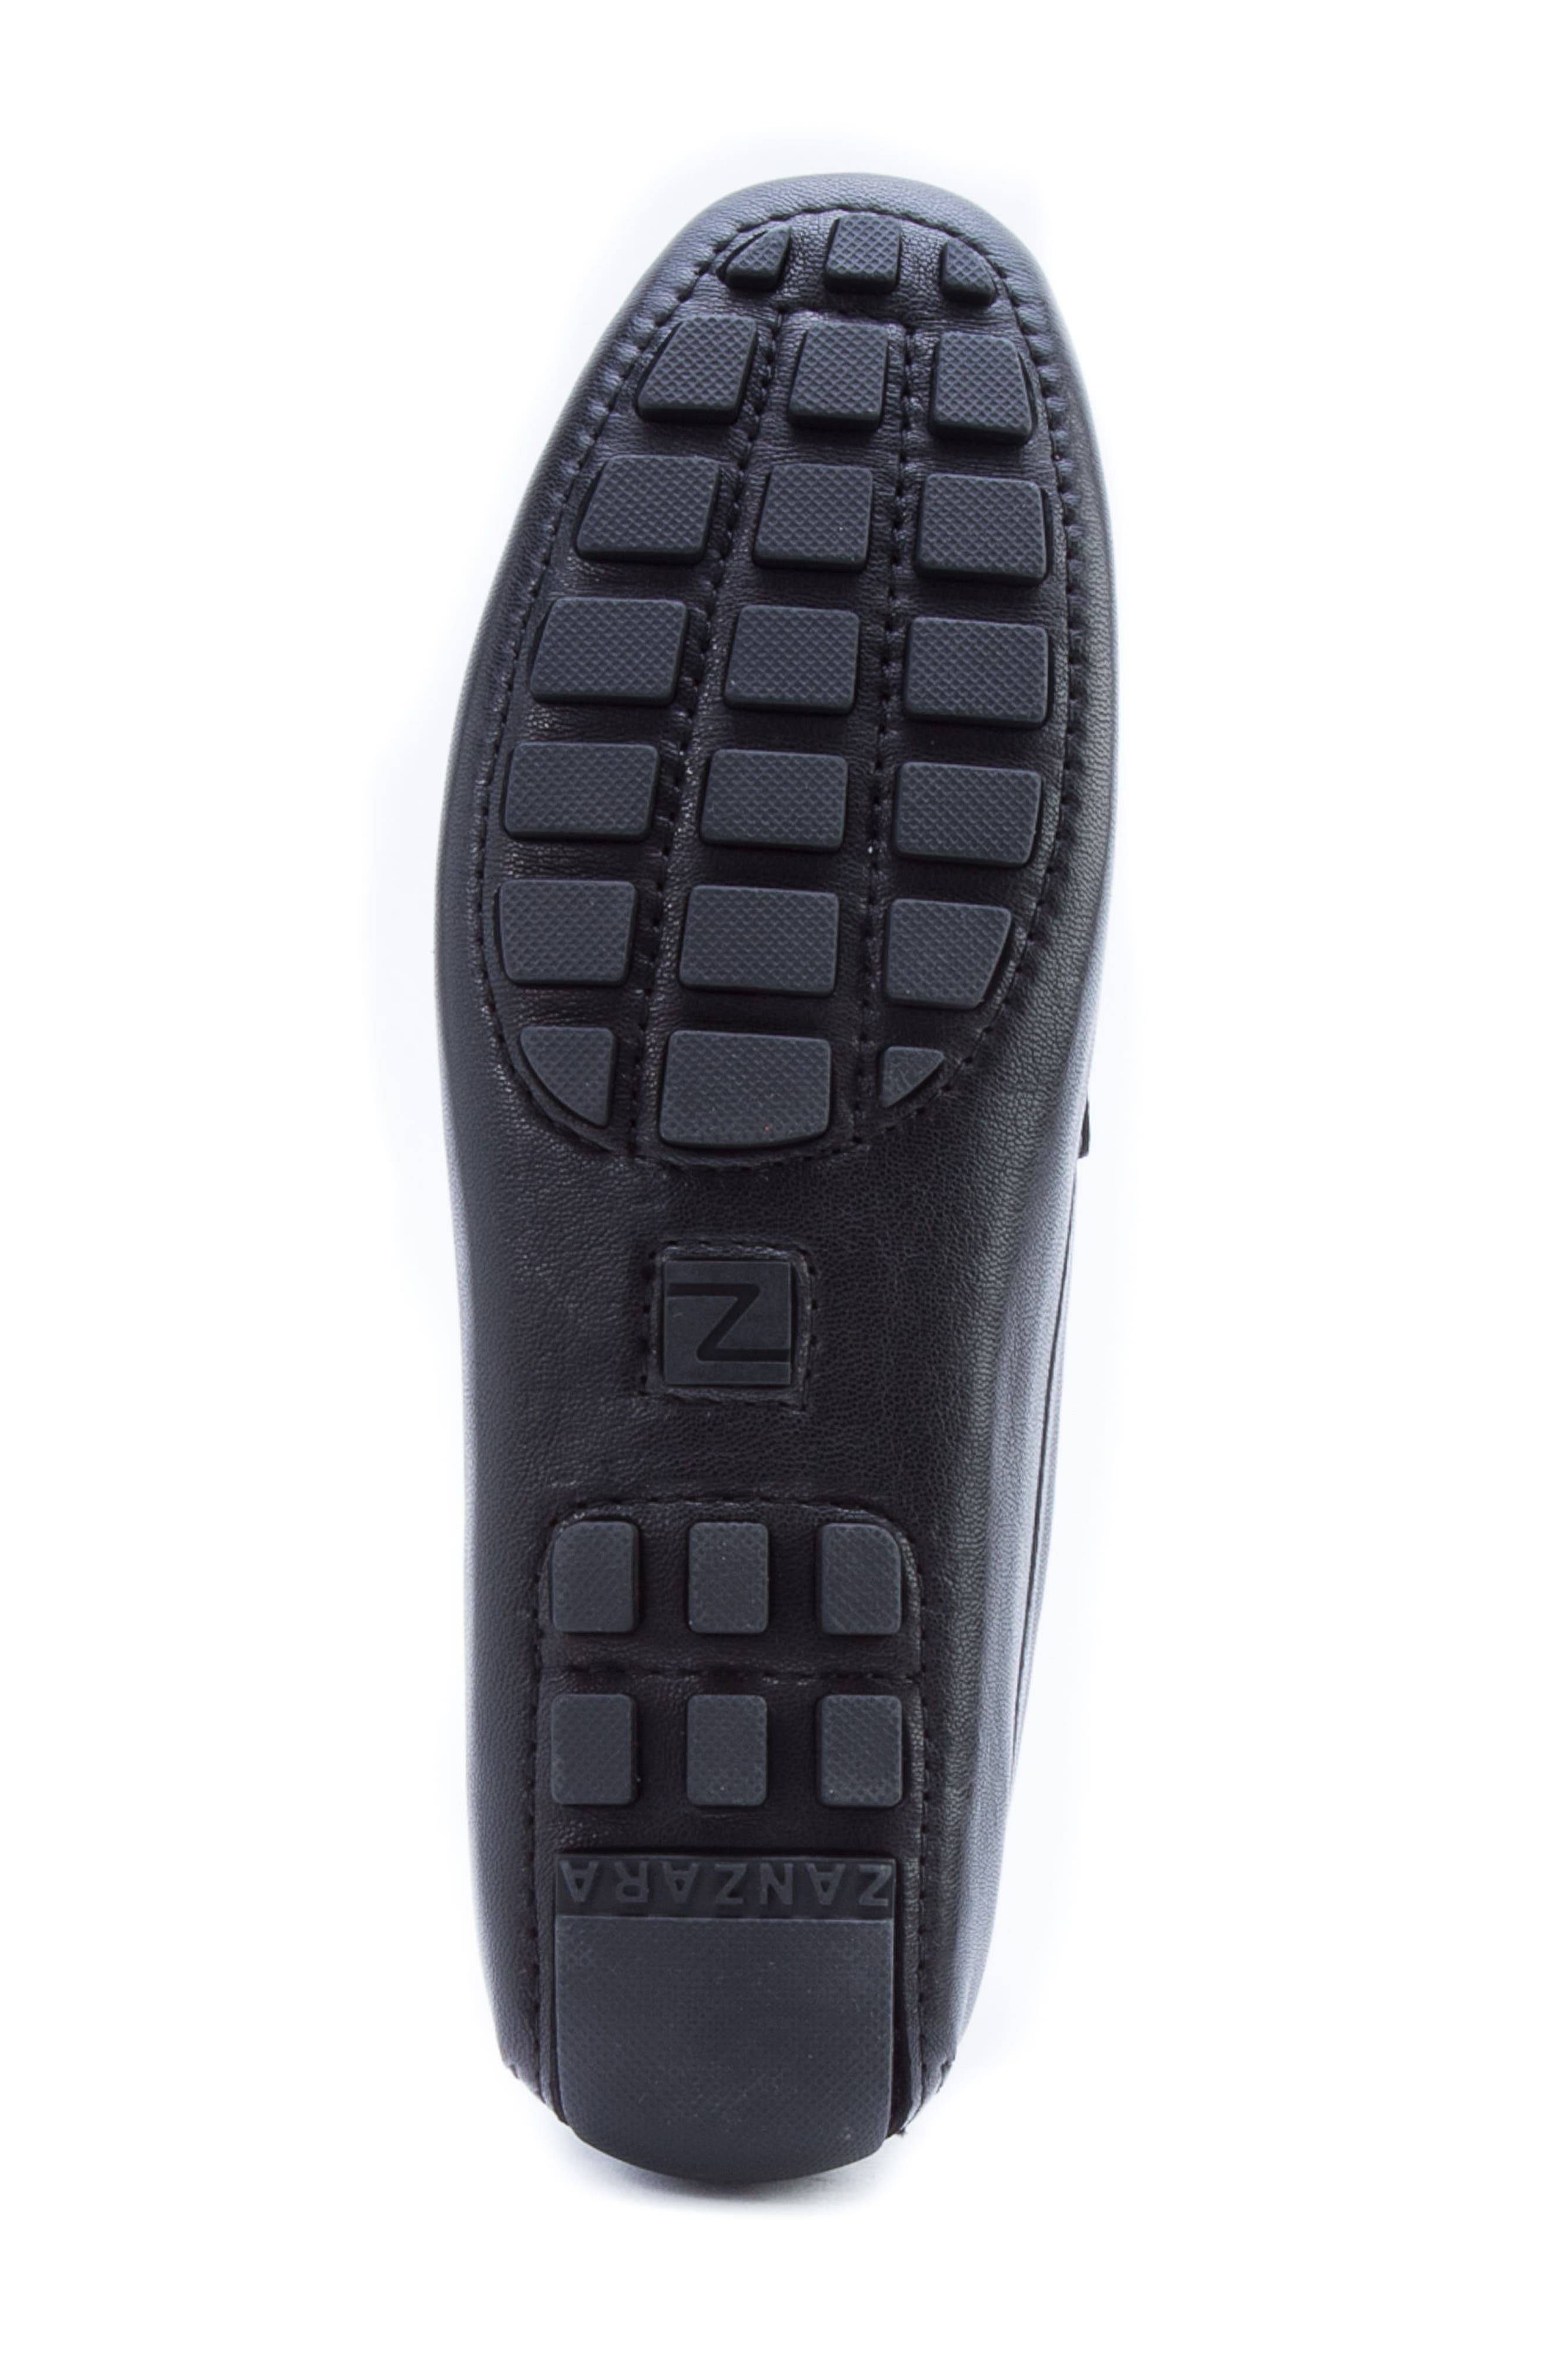 Picasso 3 Moc Toe Driving Loafer,                             Alternate thumbnail 6, color,                             BLACK LEATHER